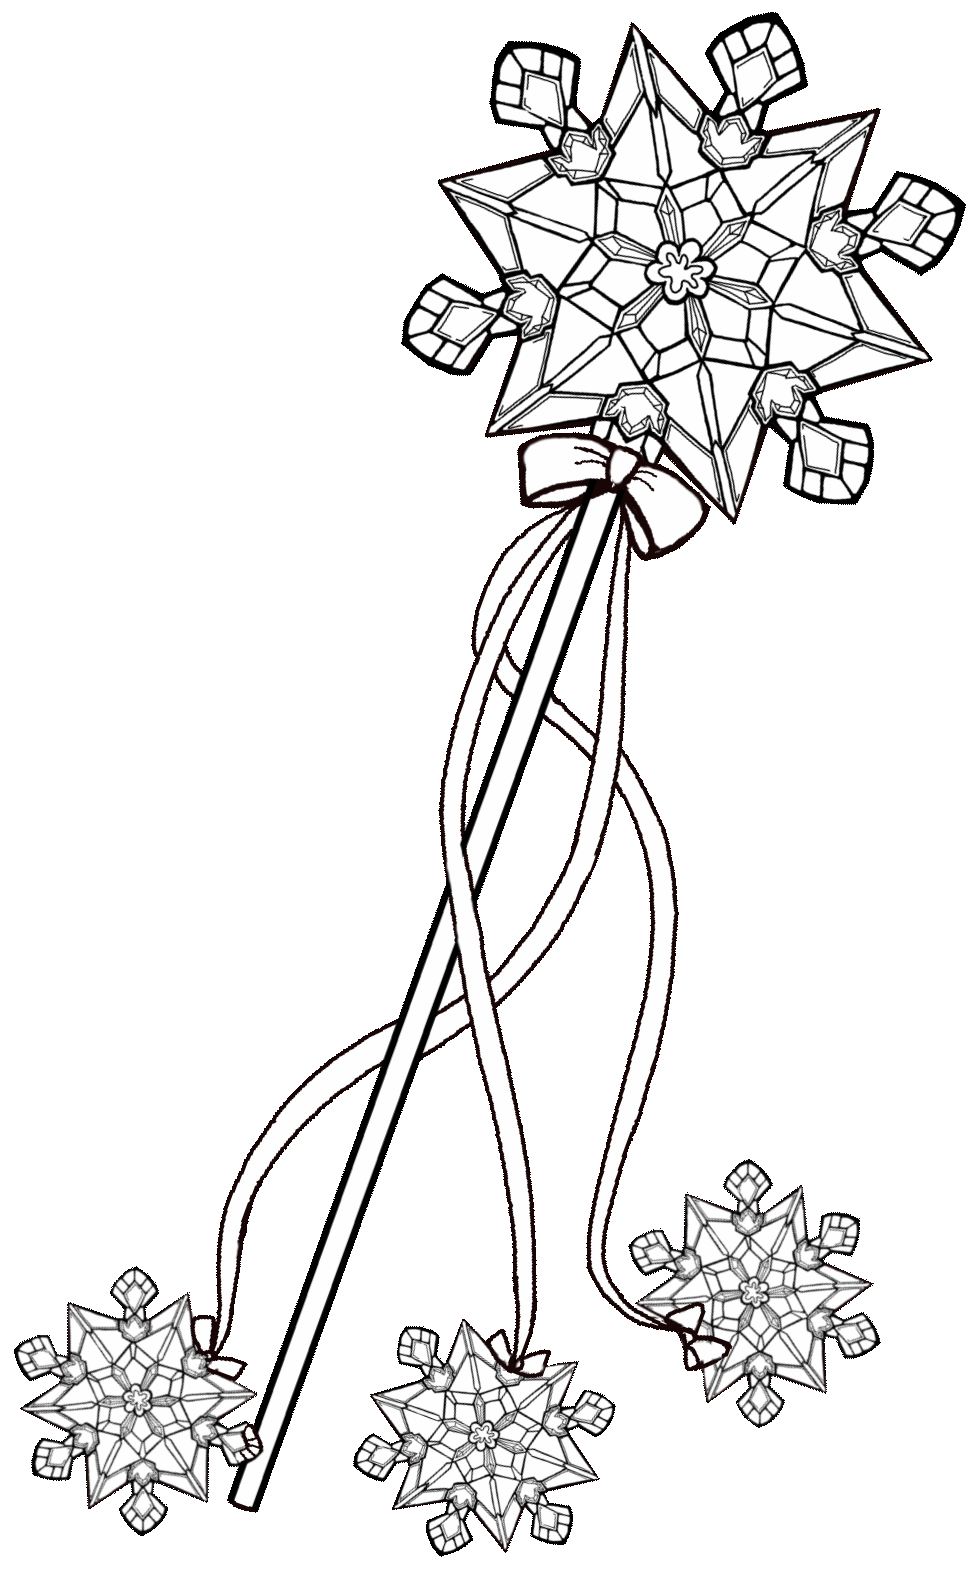 The Enchanted Tree Snow Queen Queen Elsa Printable Crown And Wand Craft Christmas Coloring Printables Christmas Colors Enchanted Tree